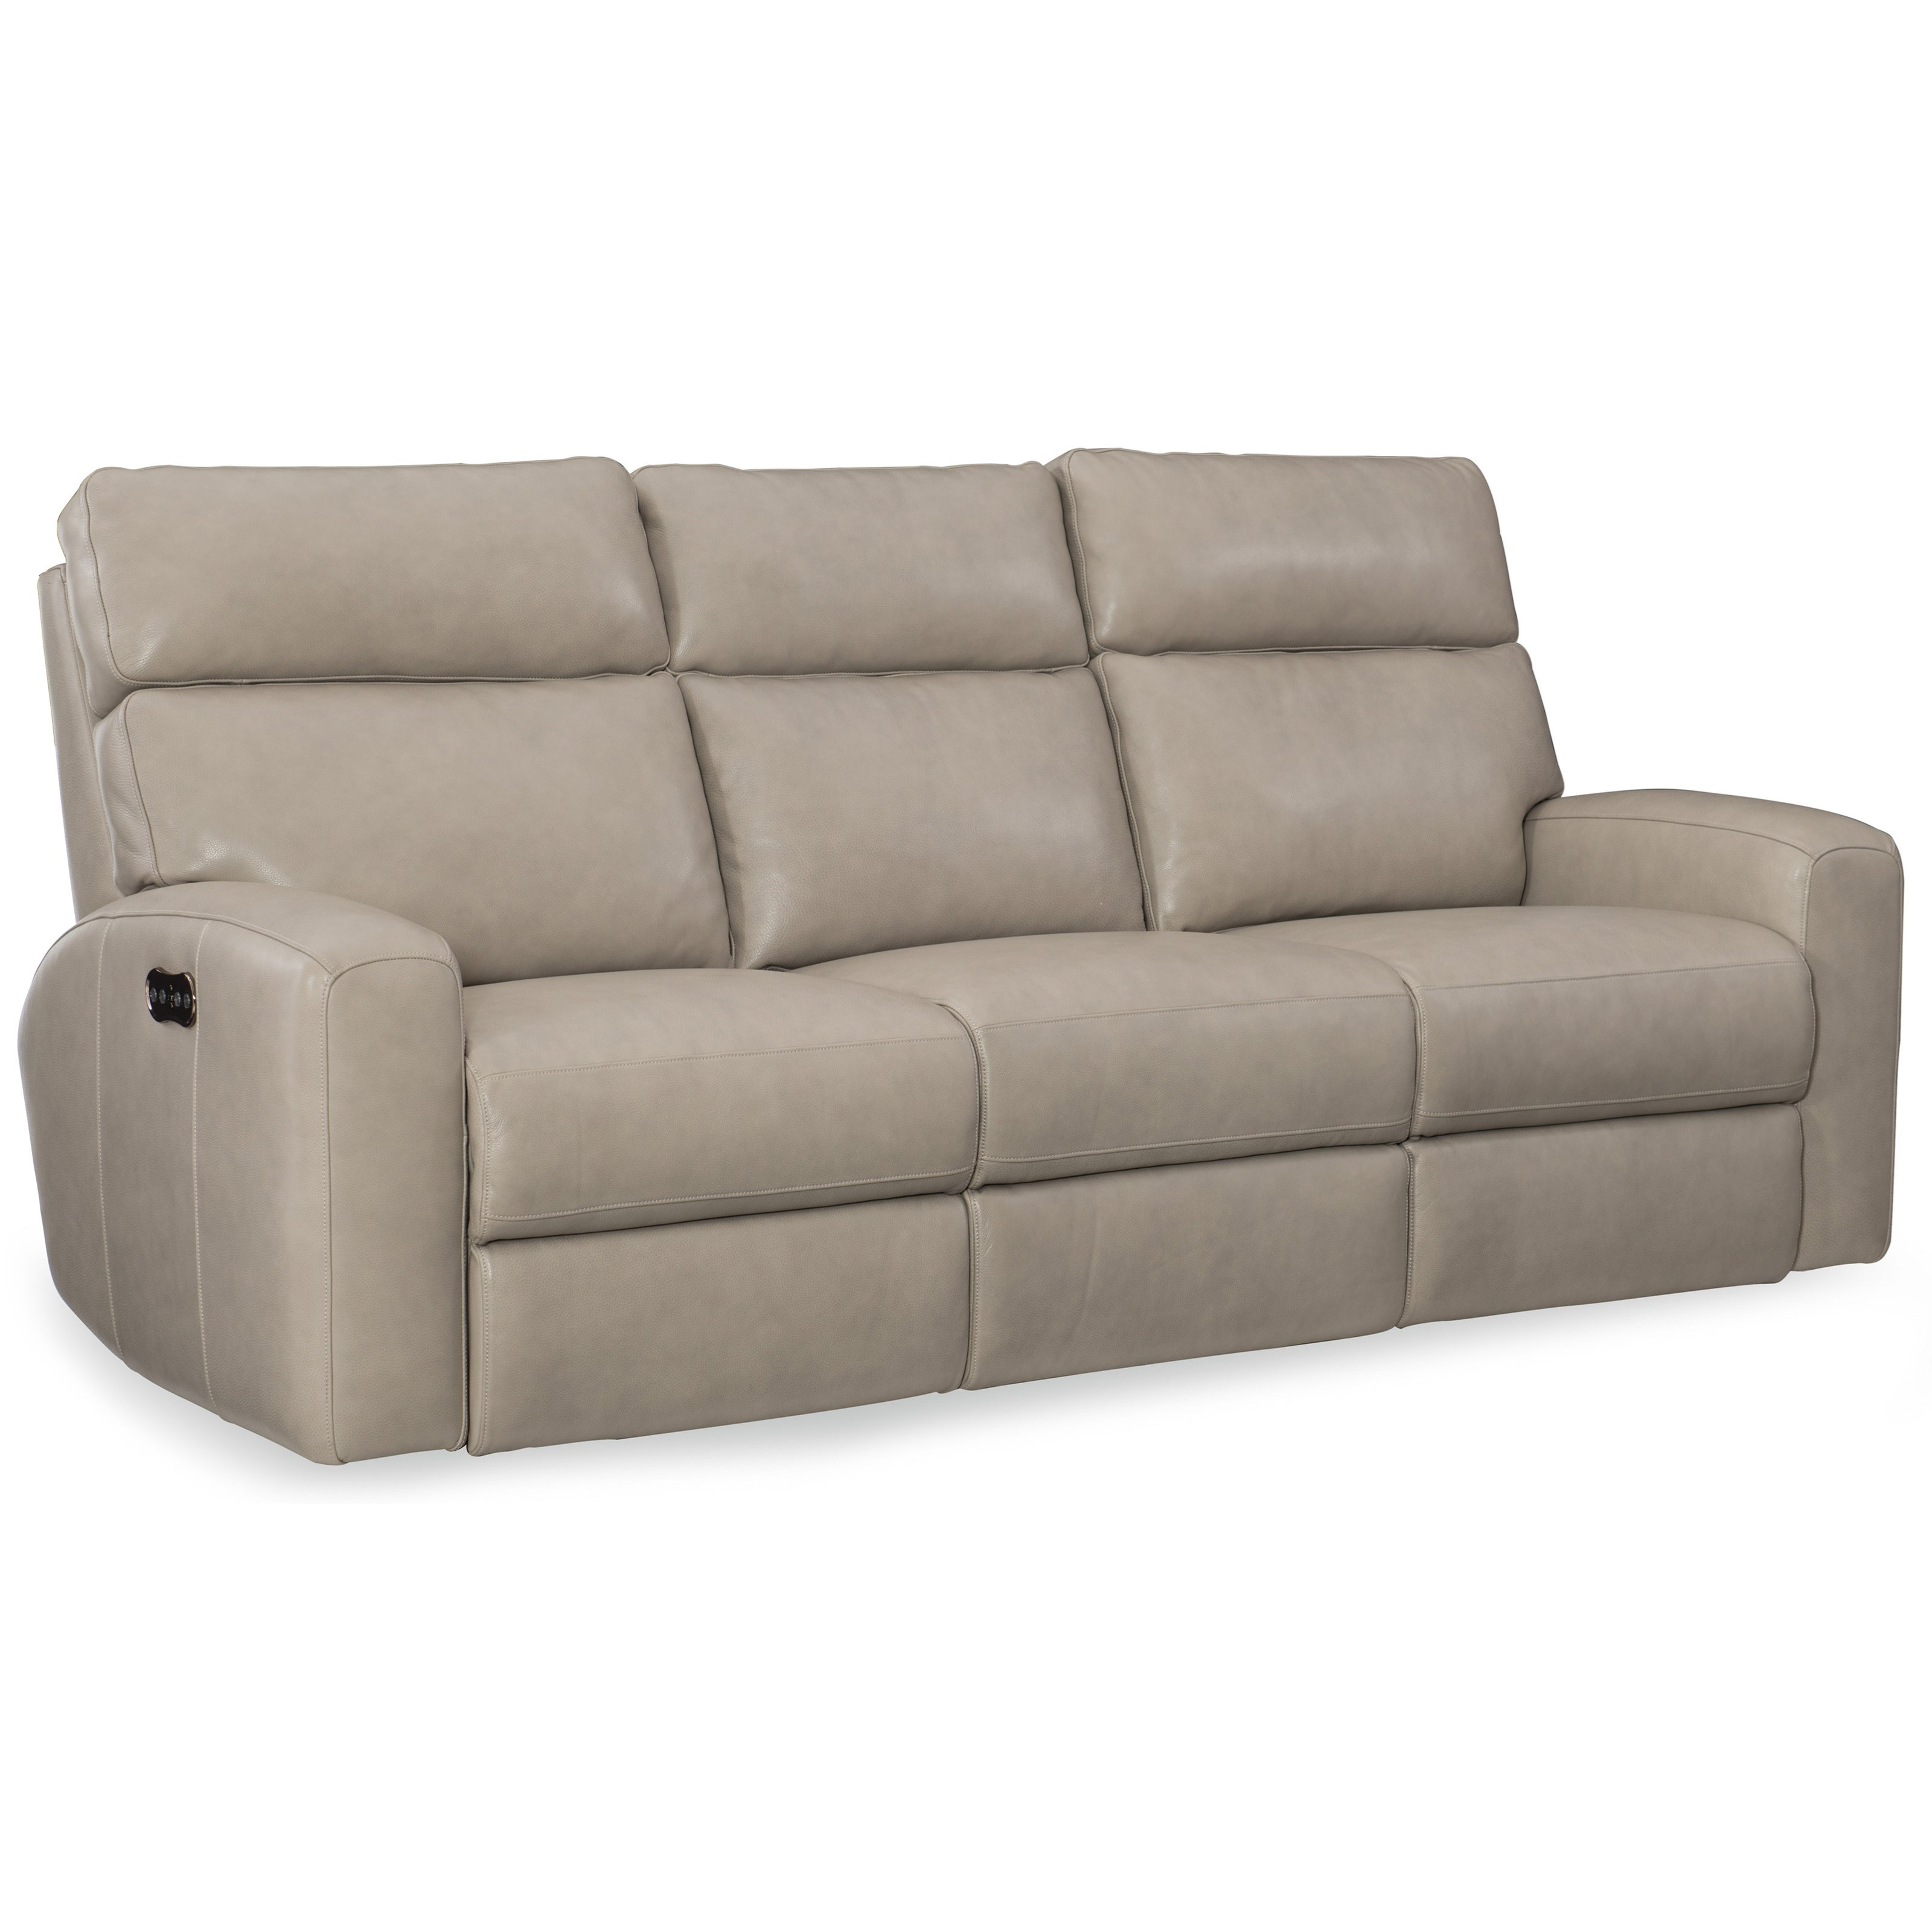 Mowry Power Motion Sofa w/Pwr Hdrest by Hooker Furniture at Baer's Furniture